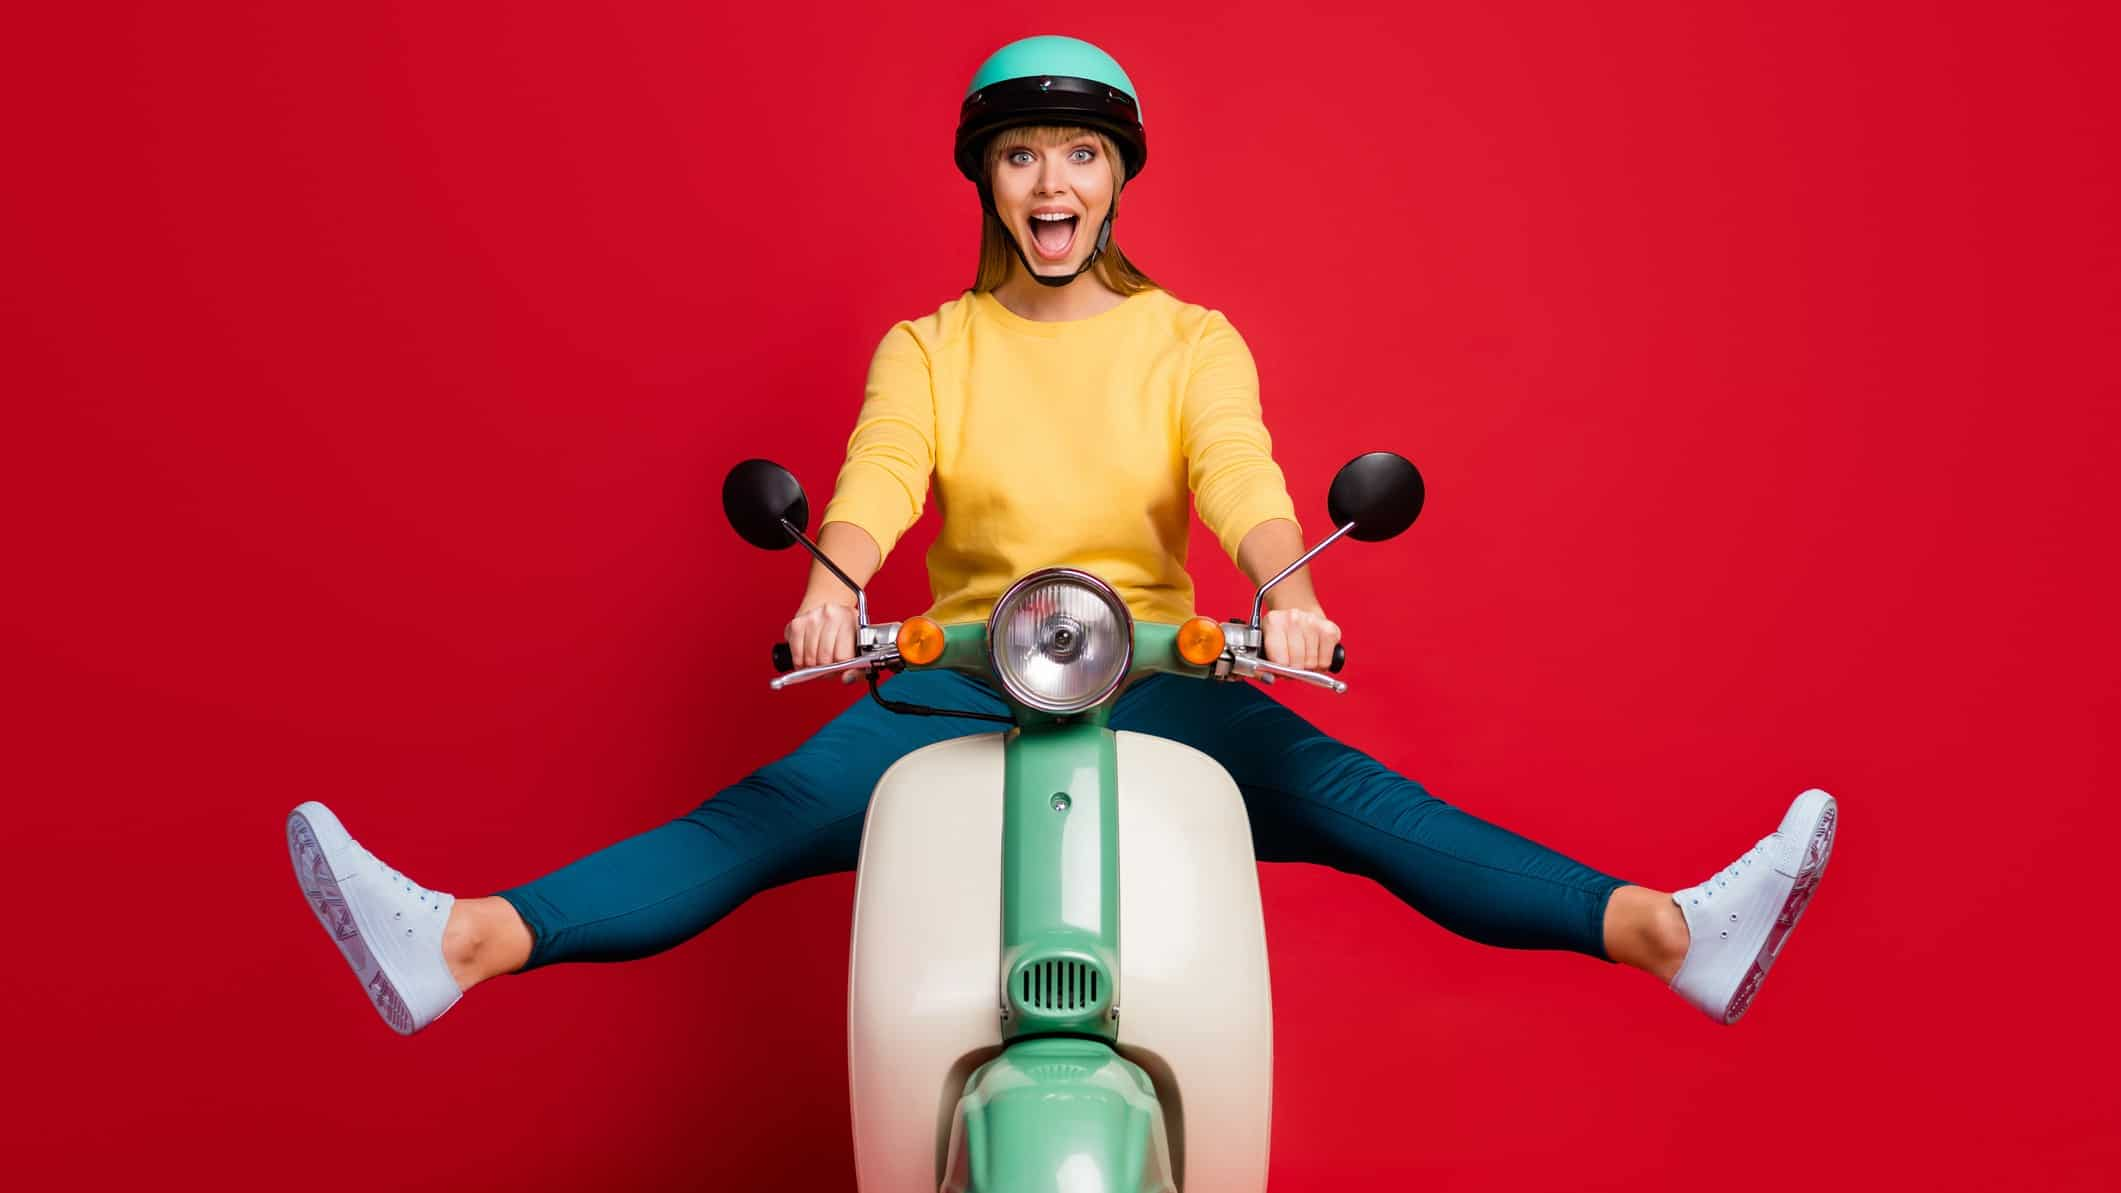 Excited woman on scooter wearing helmet in front of red background